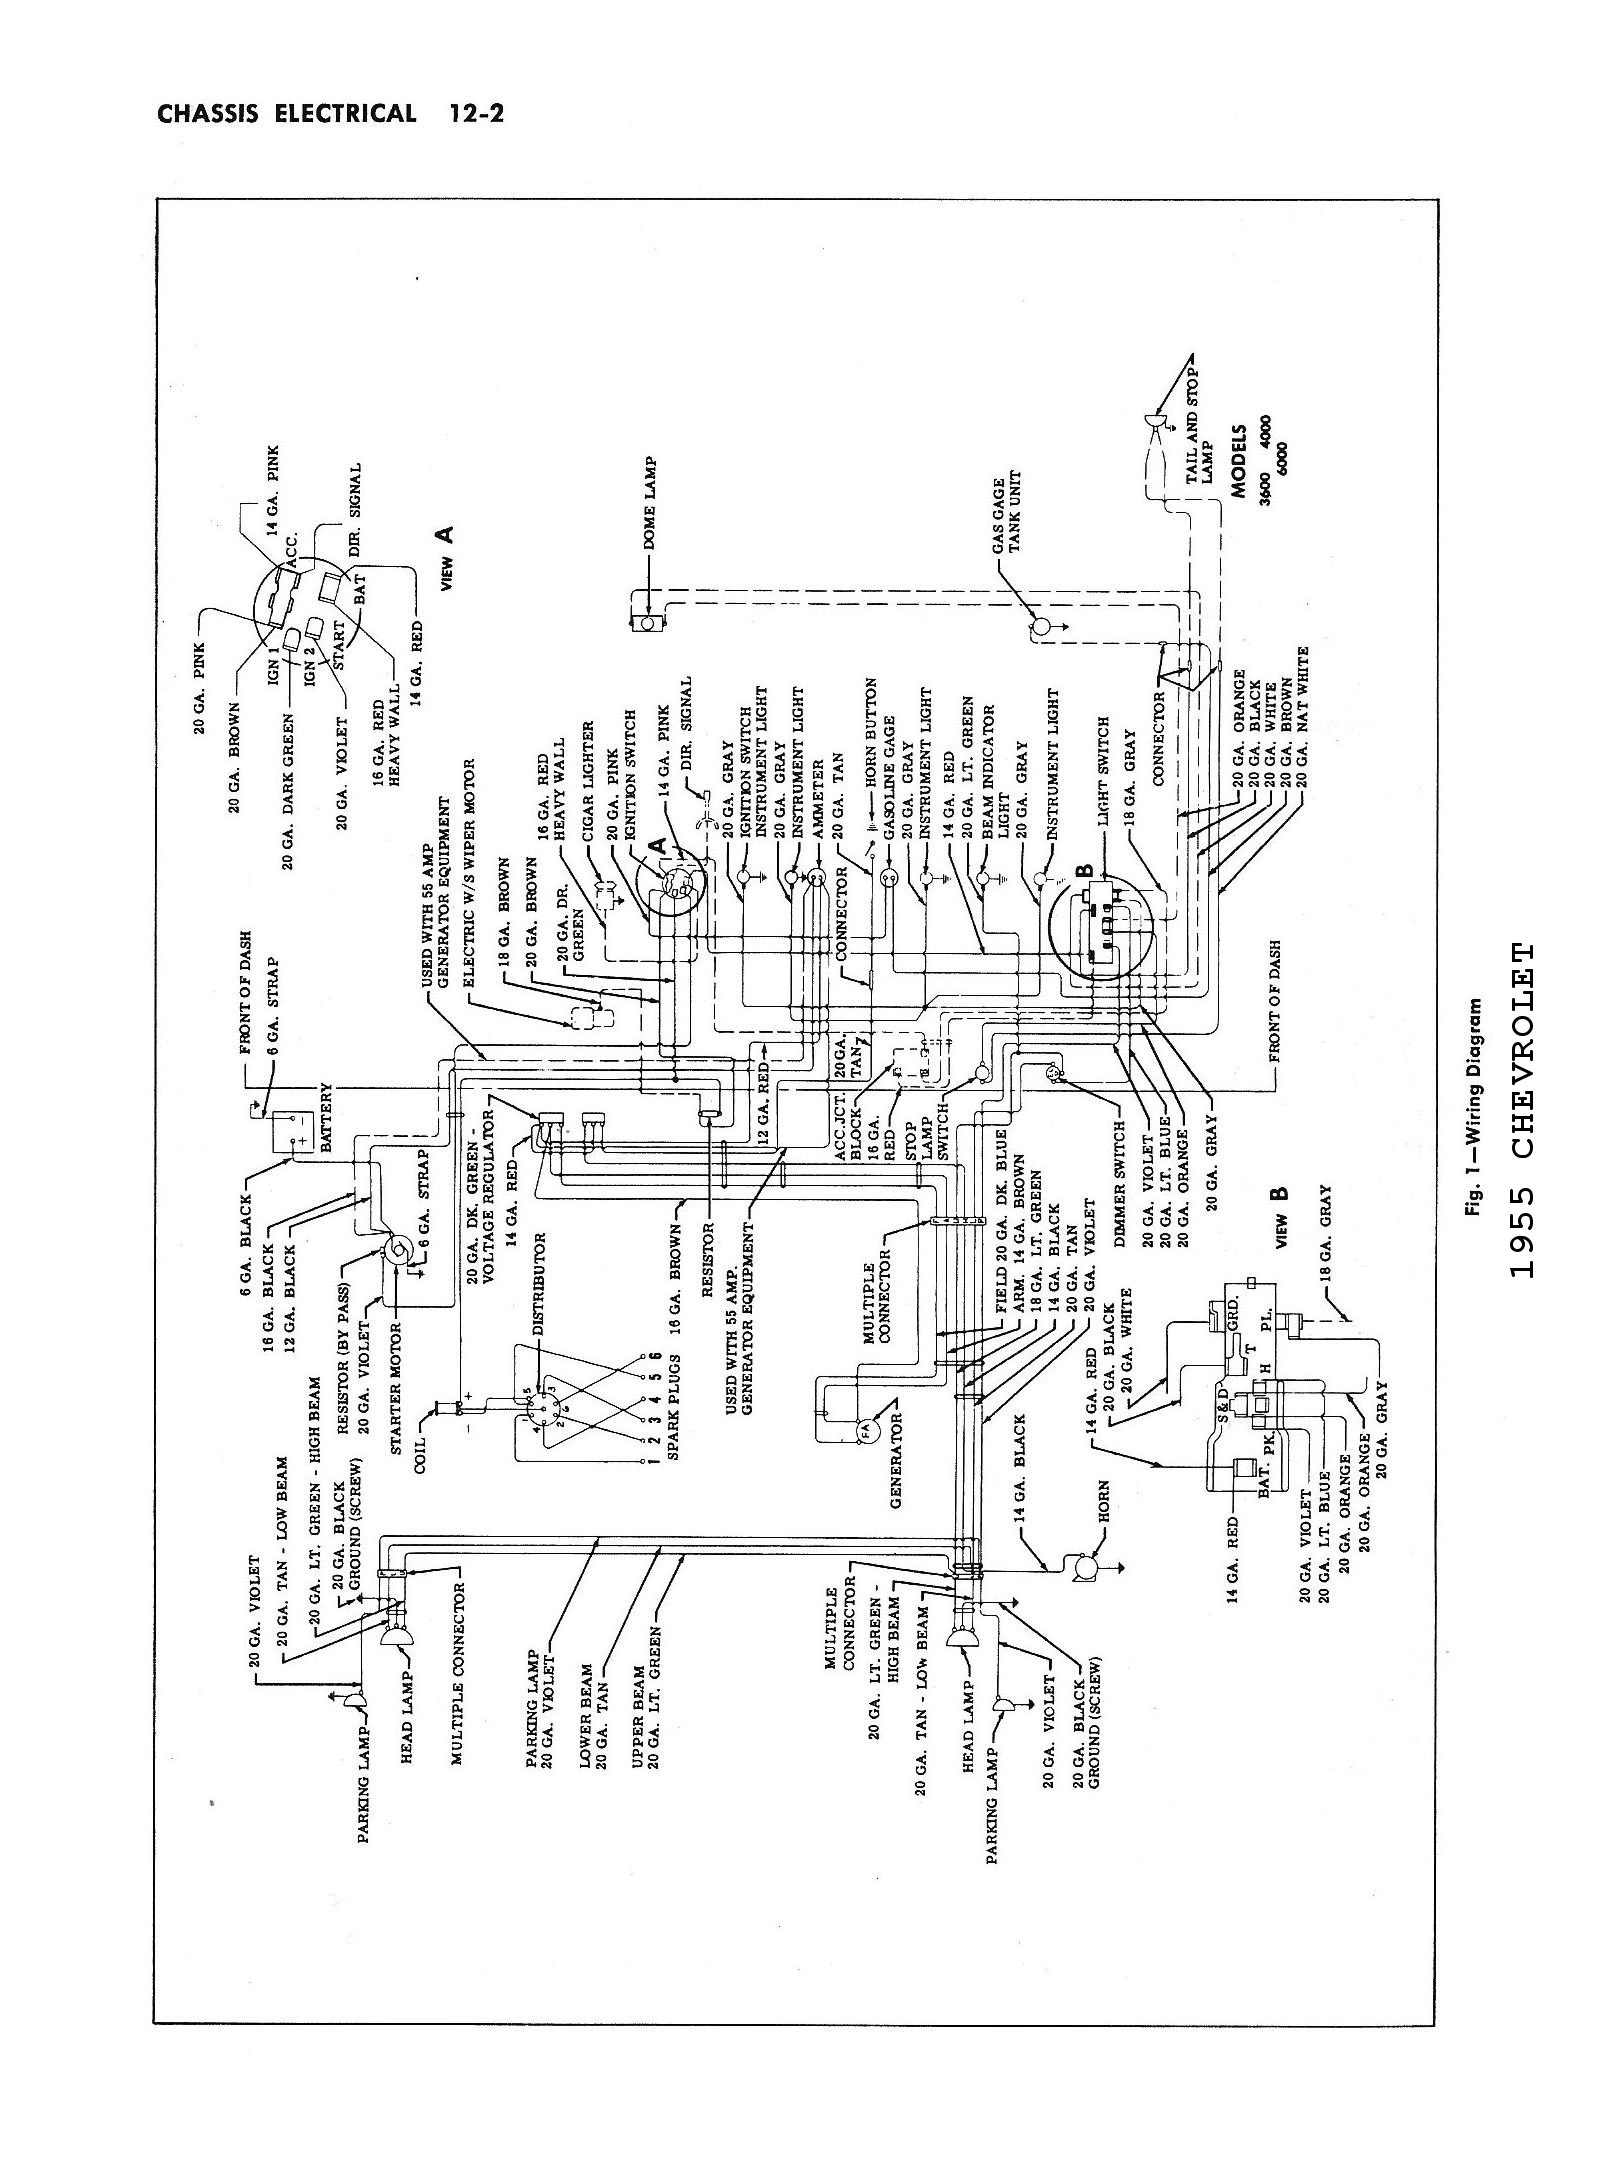 55ctsm1202 chevy wiring diagrams chevy truck wiring diagram at fashall.co